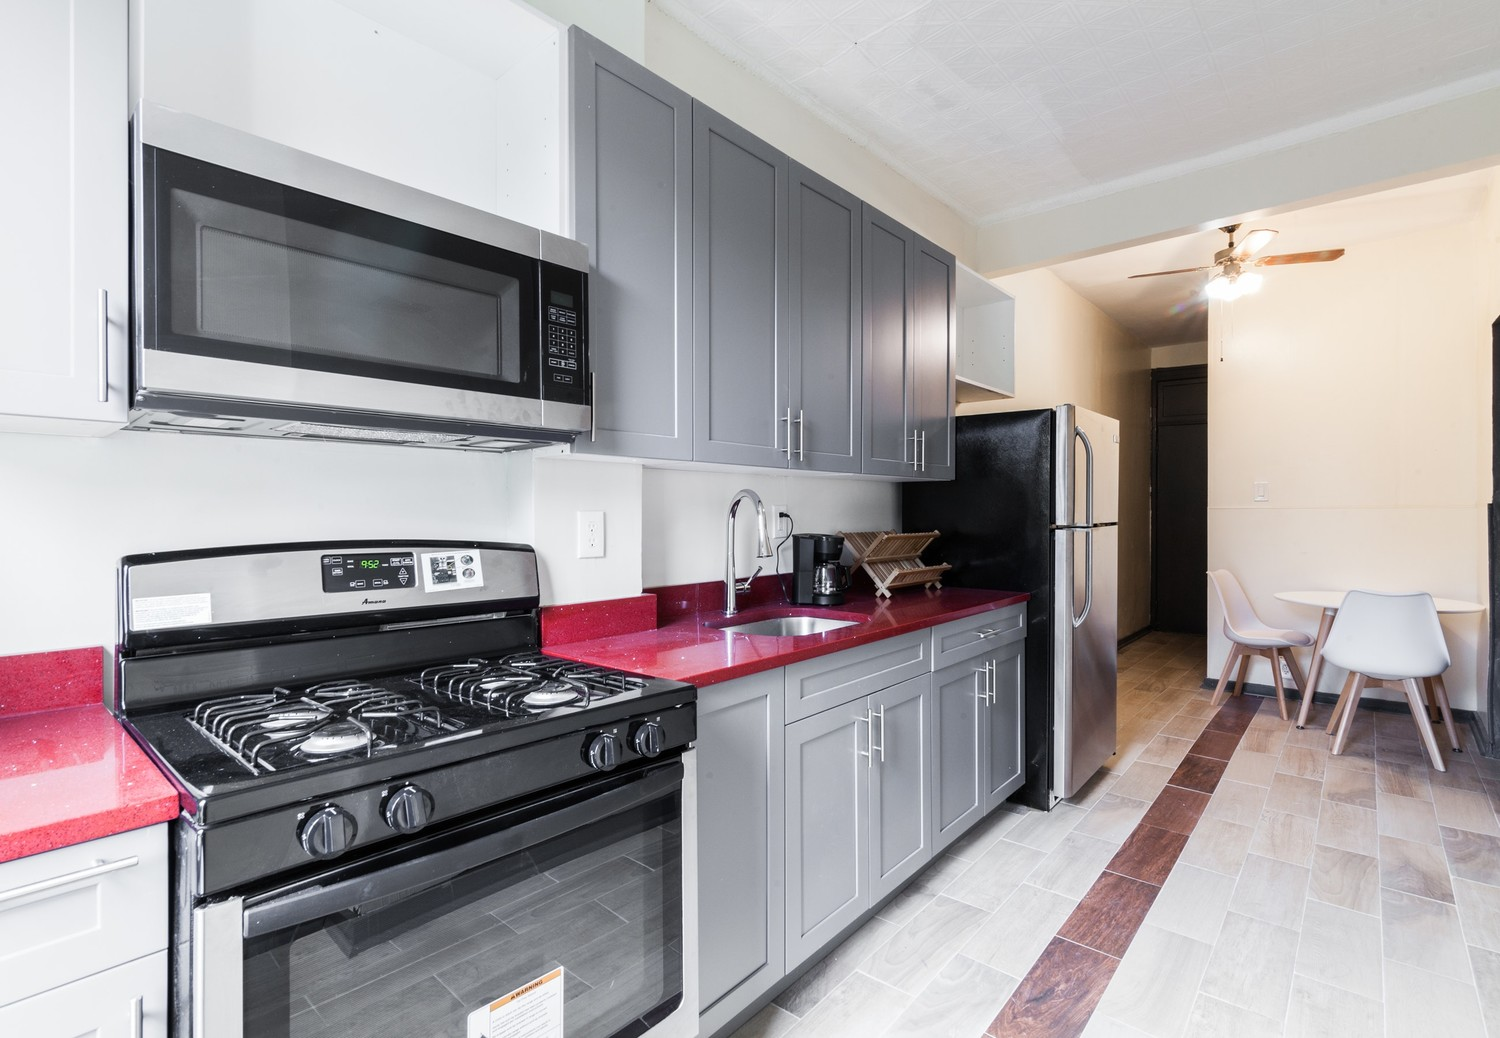 Private Room in 5 Bed / 2 Bath Apt. Already Furnished with Utilities & WiFi Included